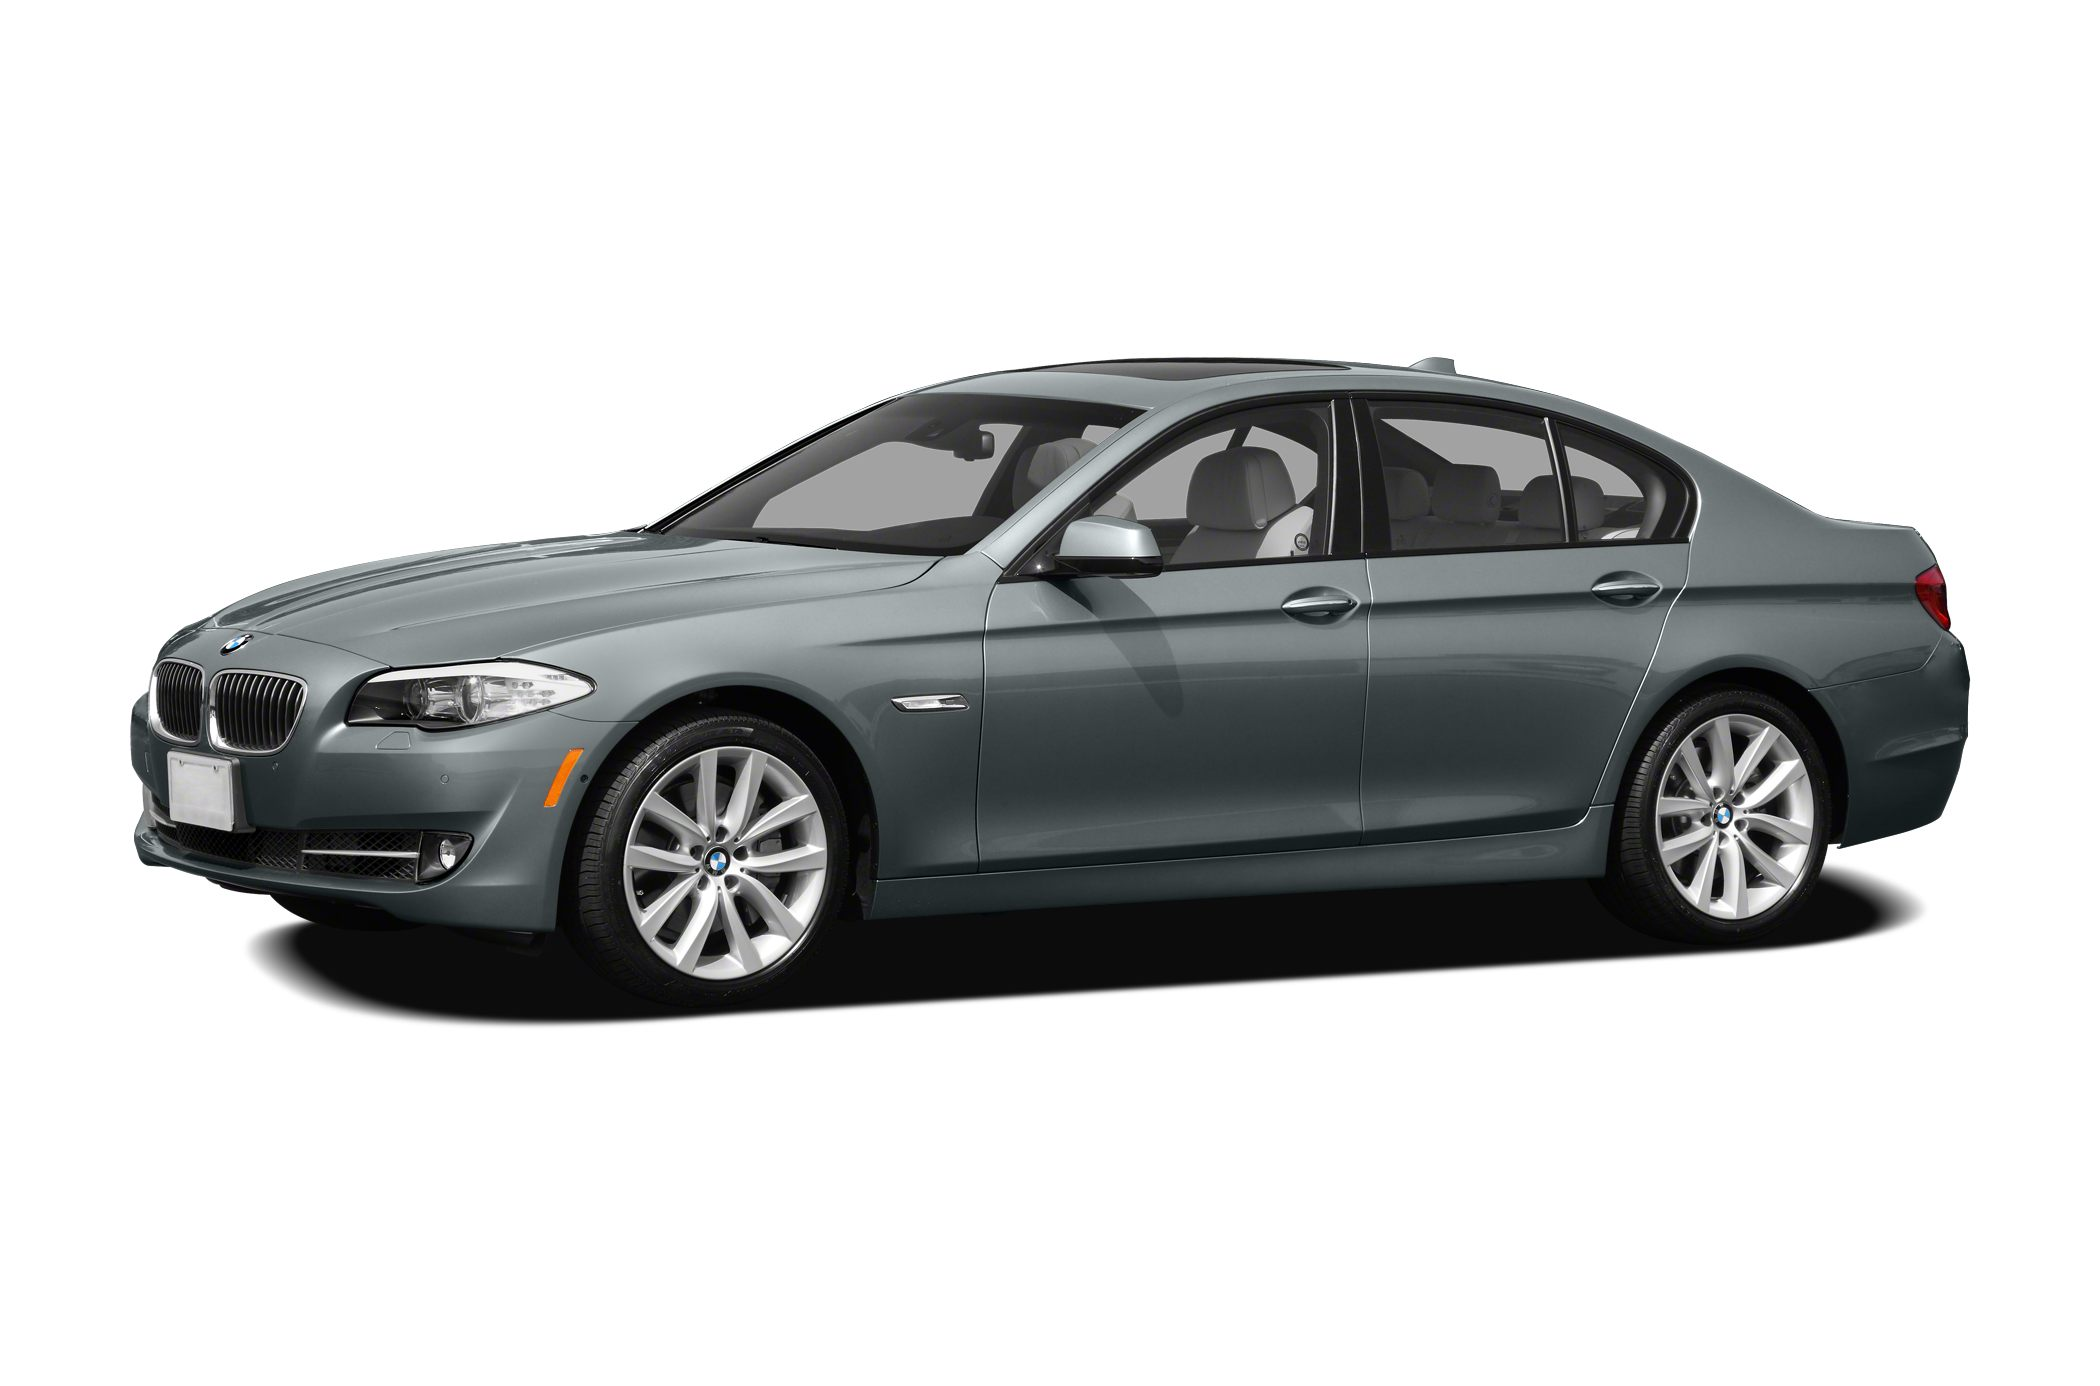 2011 BMW 550 I XDrive Sedan for sale in Linden for $27,990 with 81,271 miles.